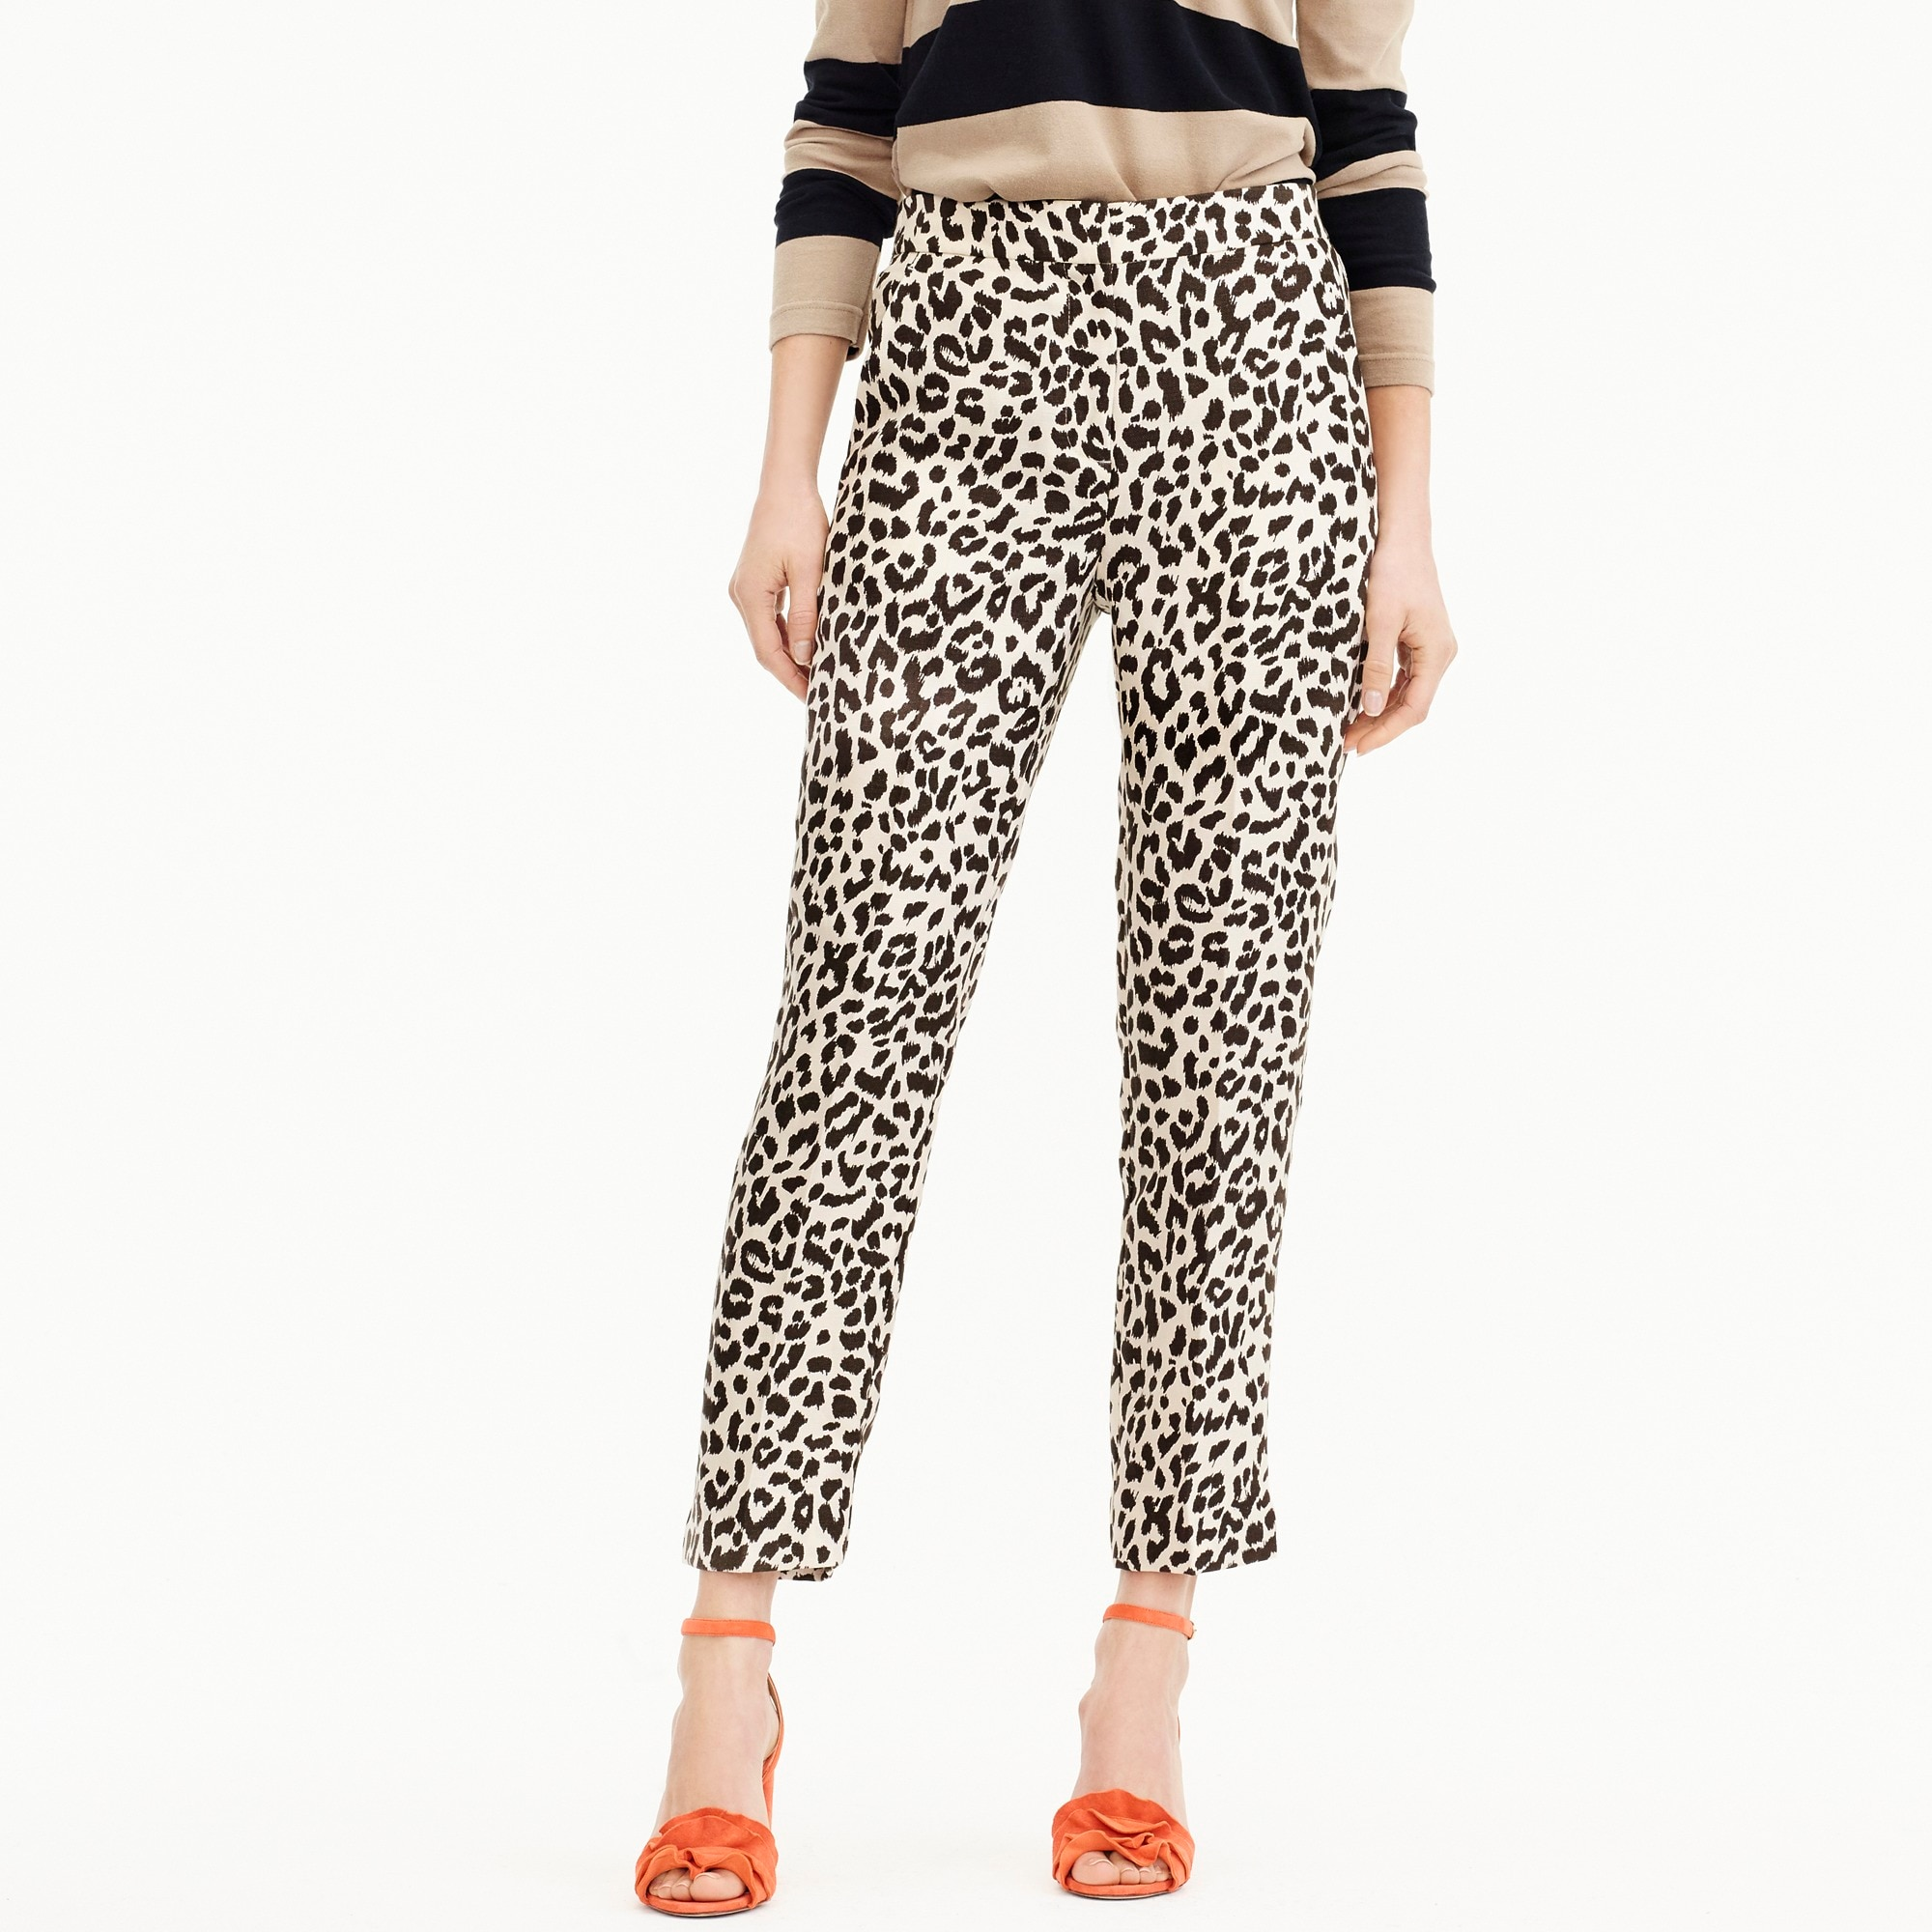 women's easy pant in leopard - women's pants